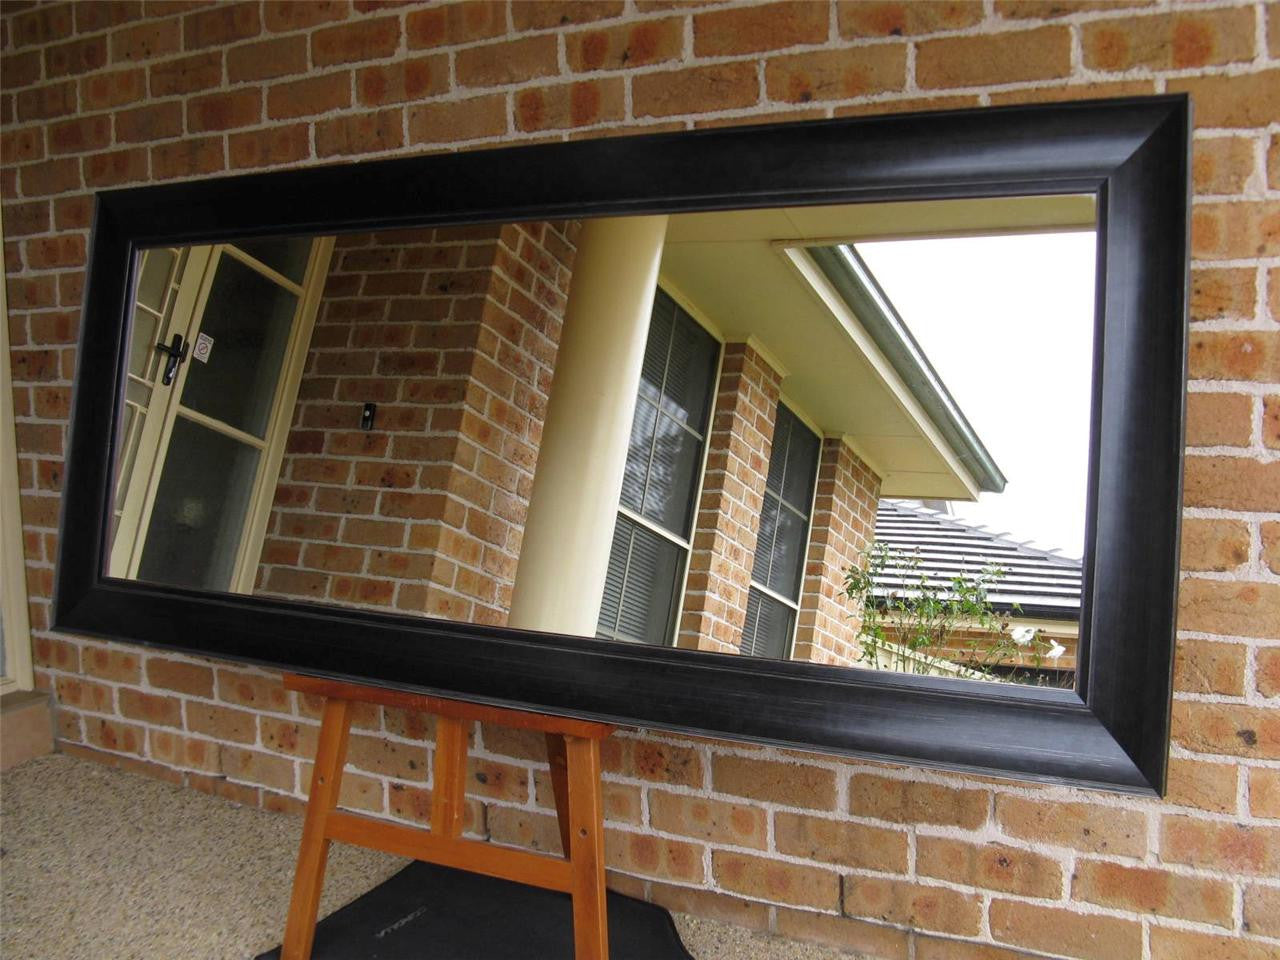 Majorca Classic Black Wood Frame Large Wall Mirror Image Enhancement Image Enhancement Mirrors